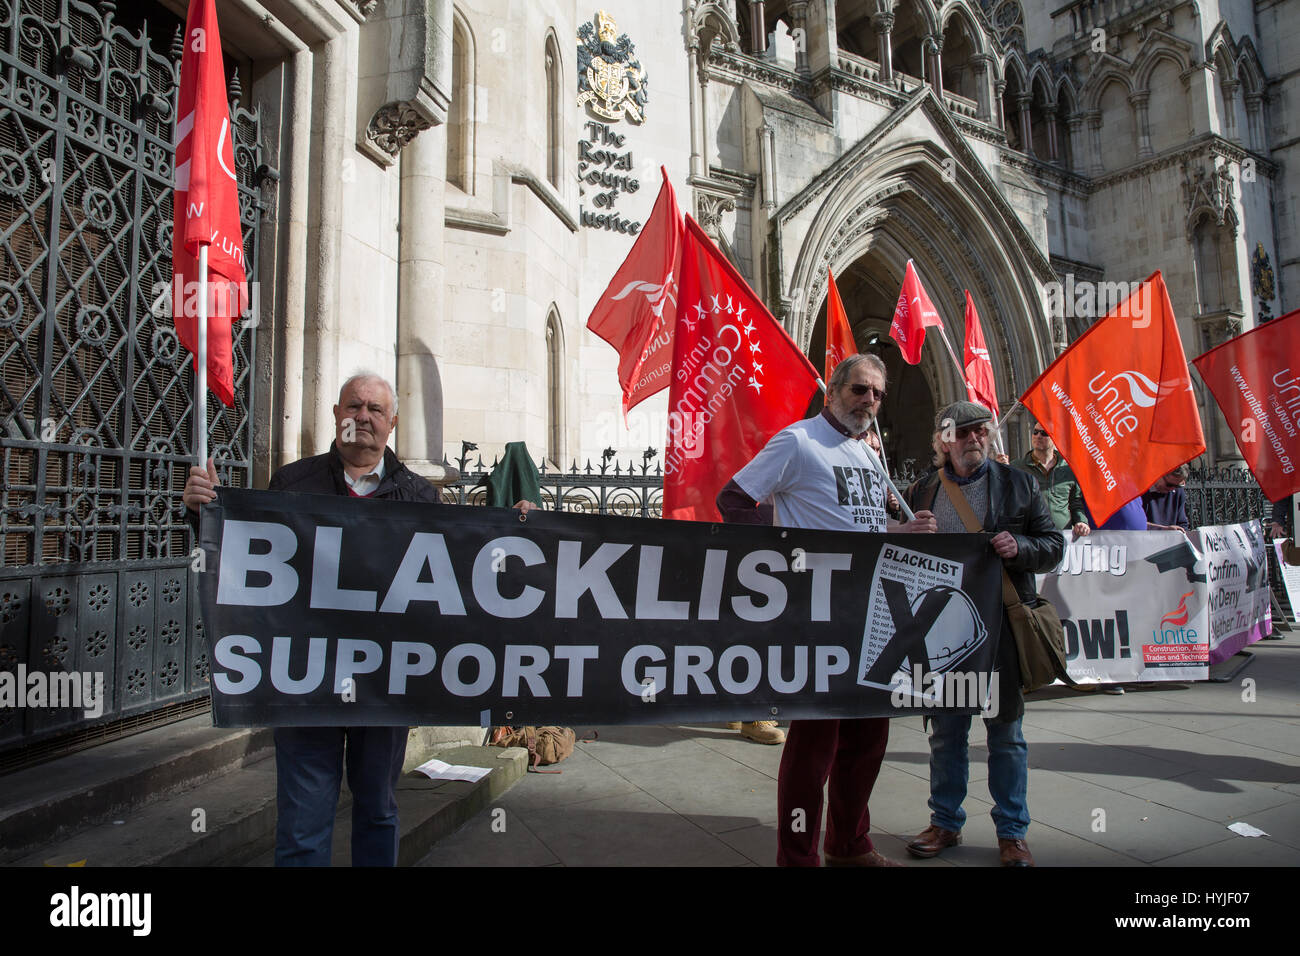 London, UK. 5th Apr, 2017. Representatives of several pressure groups, including the blacklist Support Group and Stock Photo